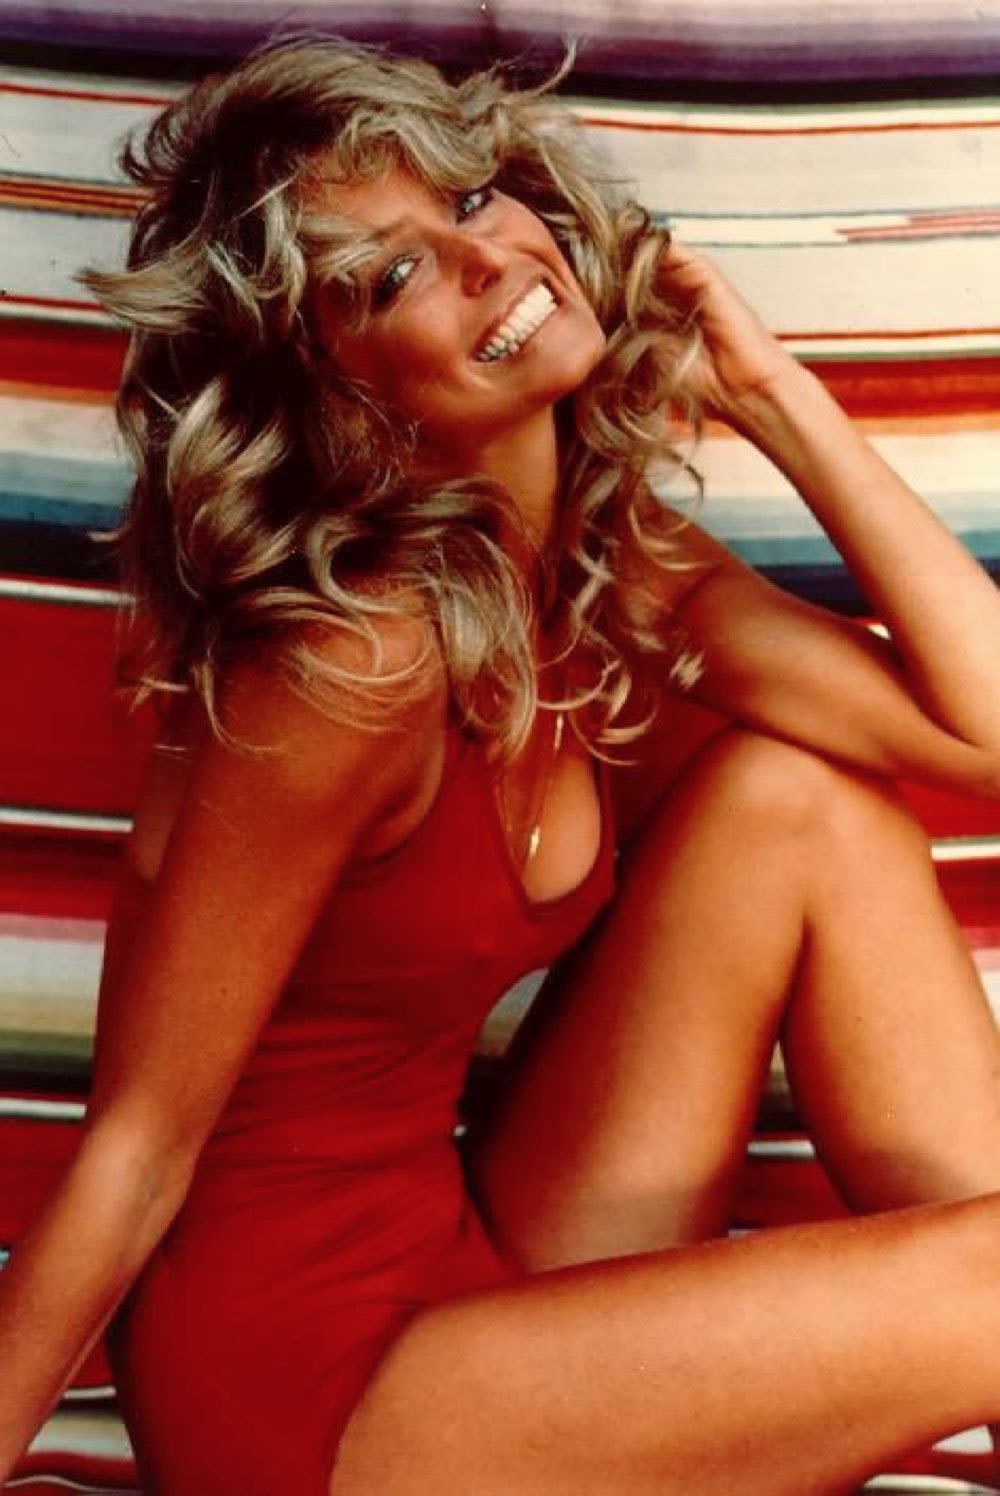 Farrah fawcett in her famous red swimsuit poster pose from 1977 f2knau